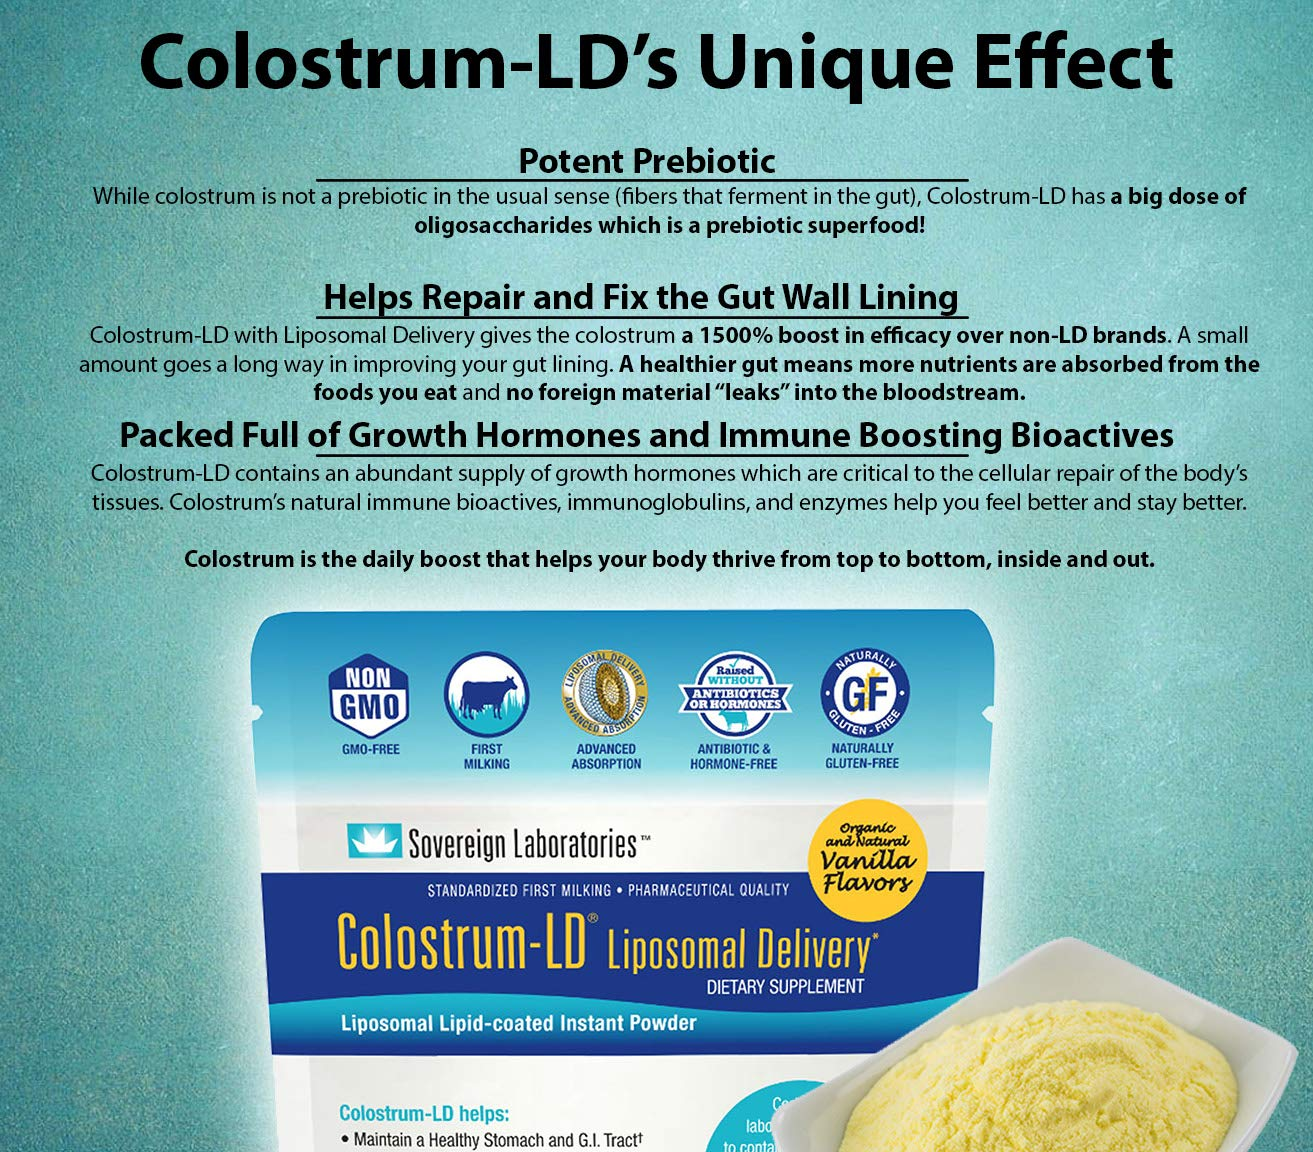 Shelf Stable Pre and Probiotic - Liposomal Colostrum Enhanced. Stomach Pain Relief,  Suppresses Bad Bacteria. Lets Beneficial Strains Colonize, Improve Gut Health, Designed For Adult Women and Men